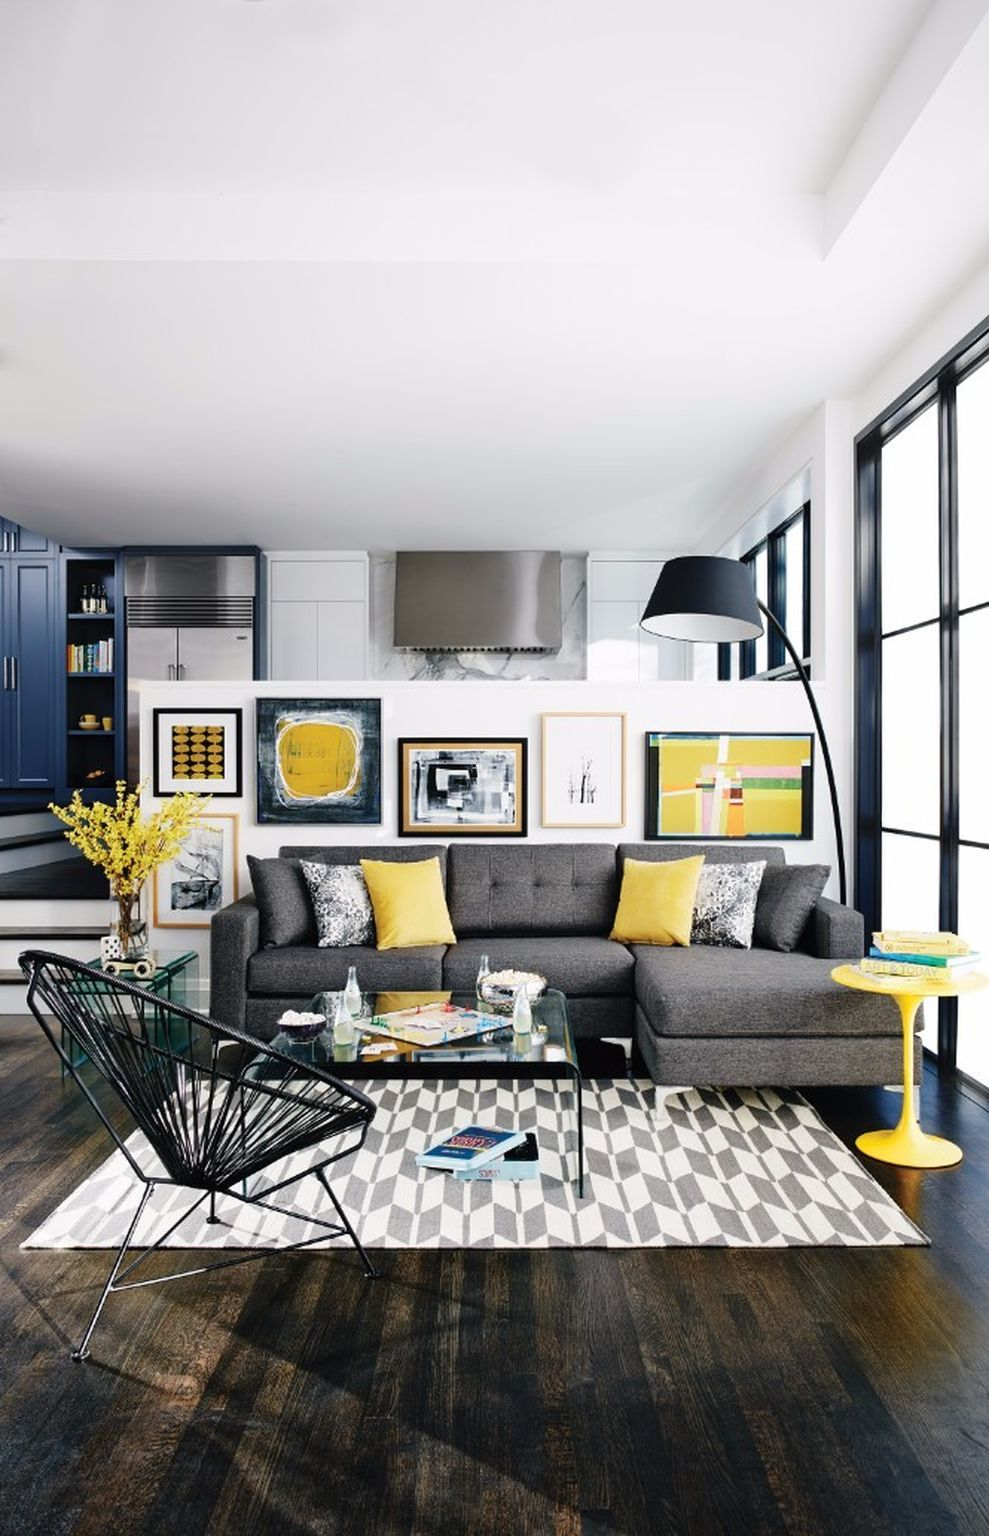 78 Modern Apartment Decor Ideas You Should Try